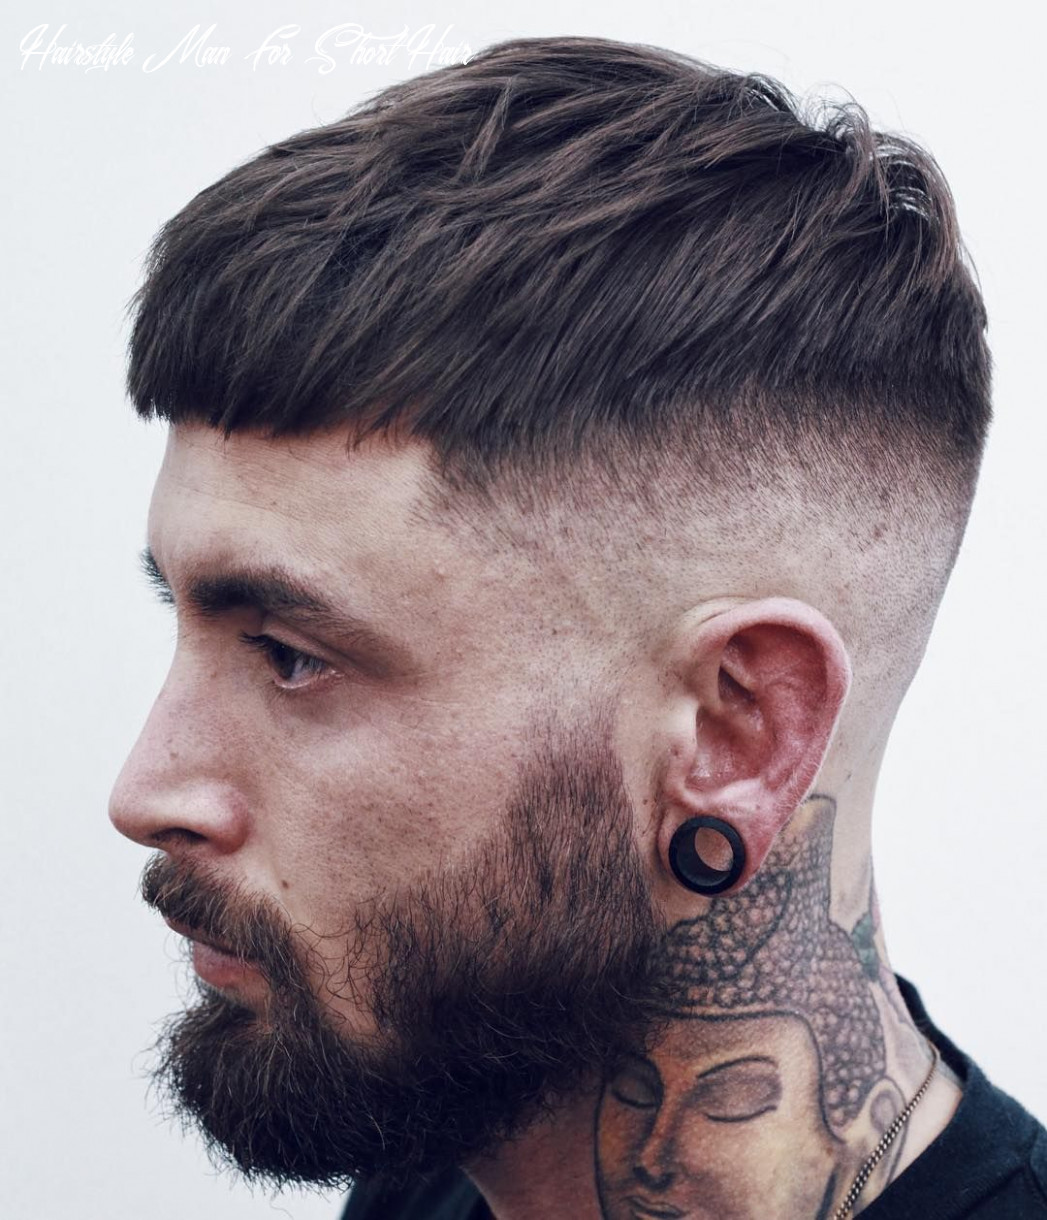 11 cool short haircuts hairstyles for men (11 update) | mens